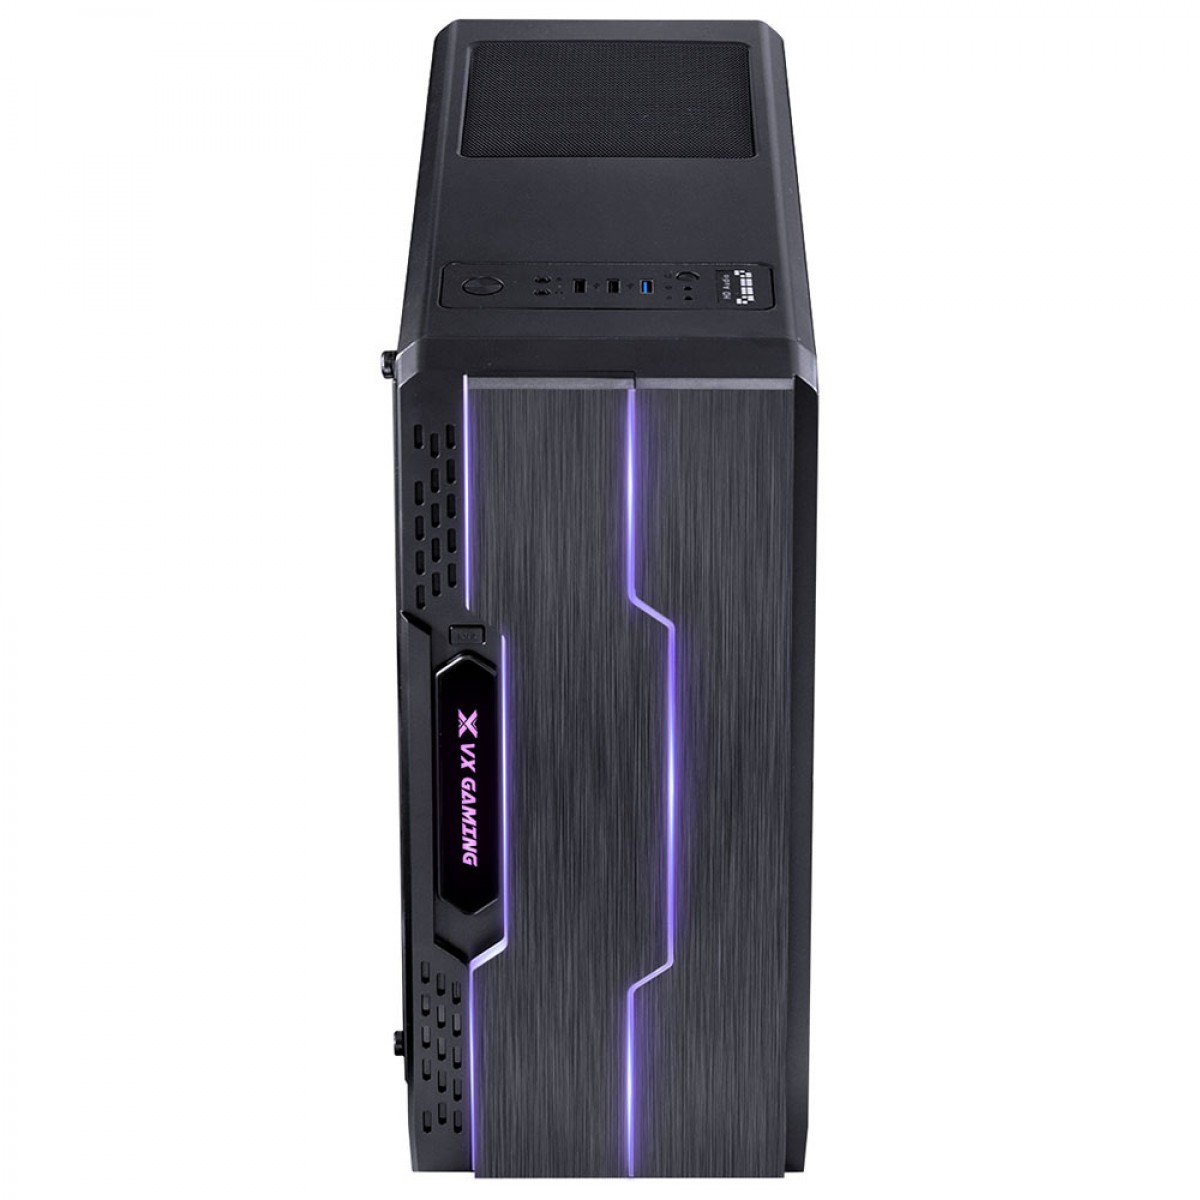 Gabinete Vinik Gamer VX Tron 27779 Full Window Fumê Mid Tower Preto LED 7 Cores S/Fonte